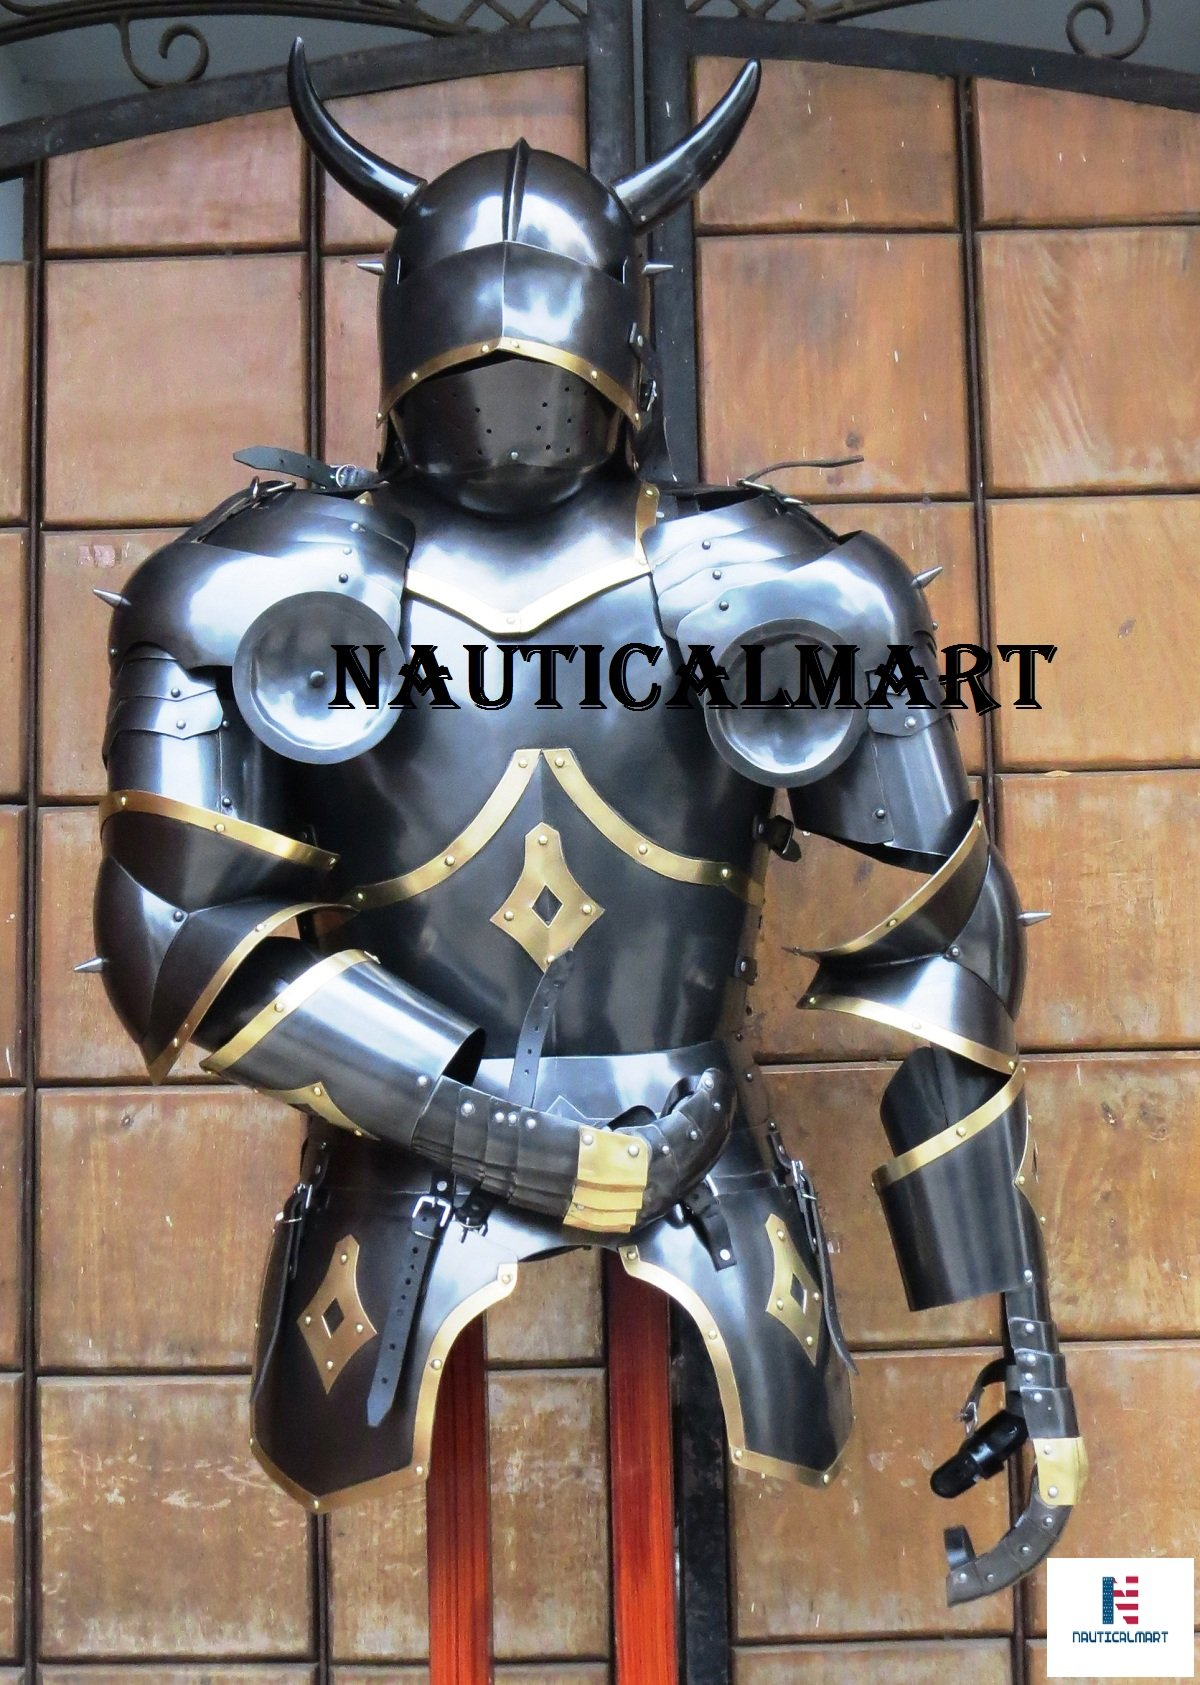 NauticalMart Medieval Knight Suit of Armor With horns Body Armour